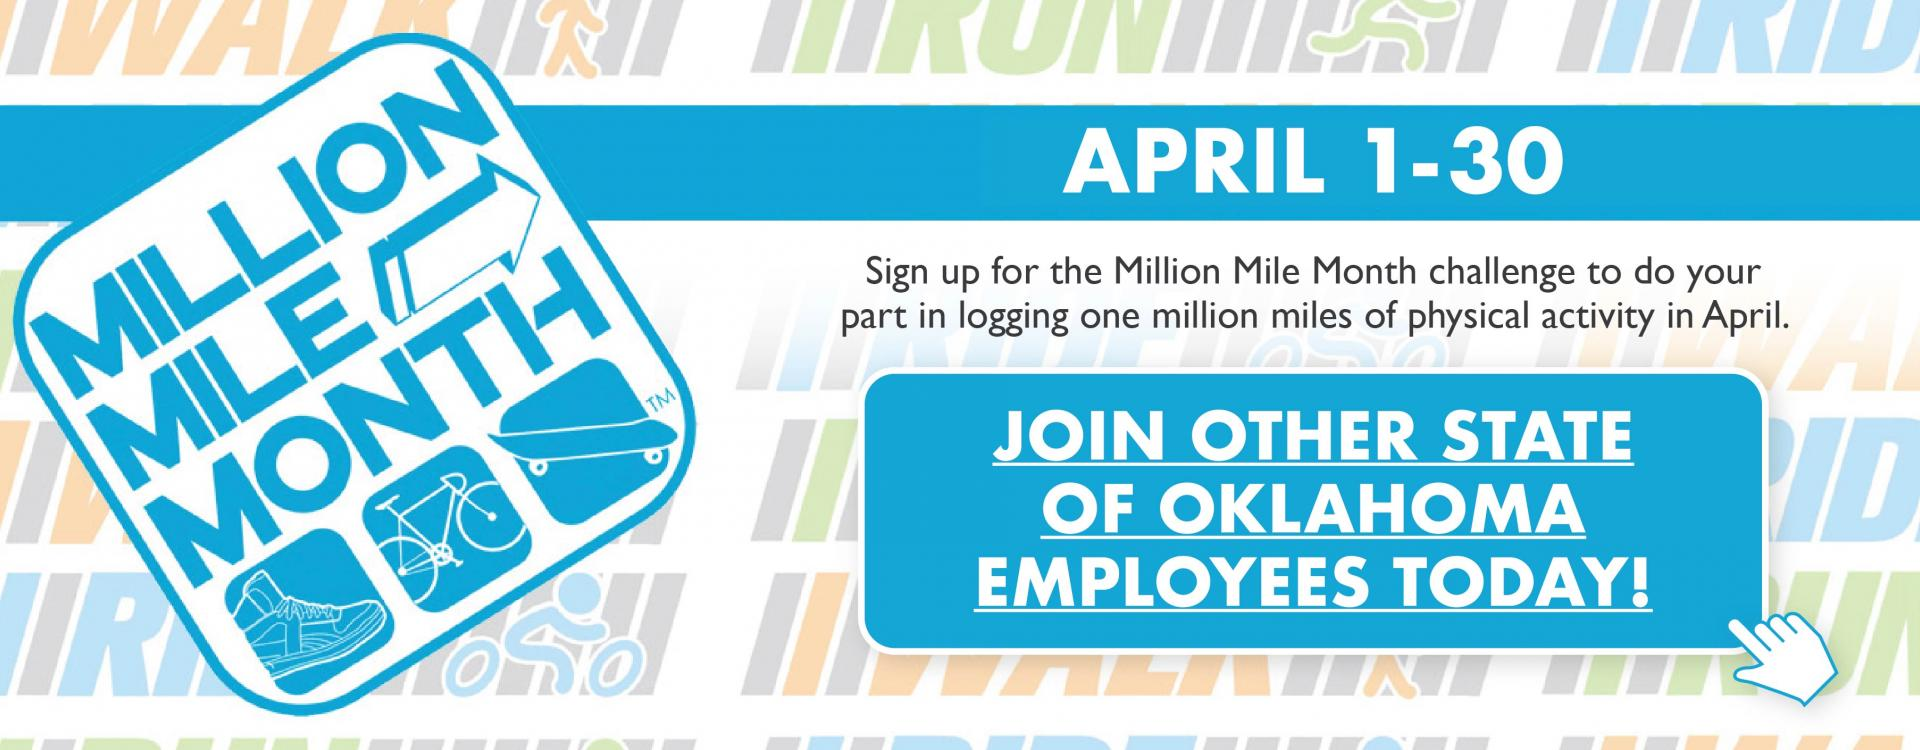 April 1-30. Sign up for the Million Mile Month challenge to do your part in logging one million miles of physical activity in April. Join other State of Oklahoma employees today!